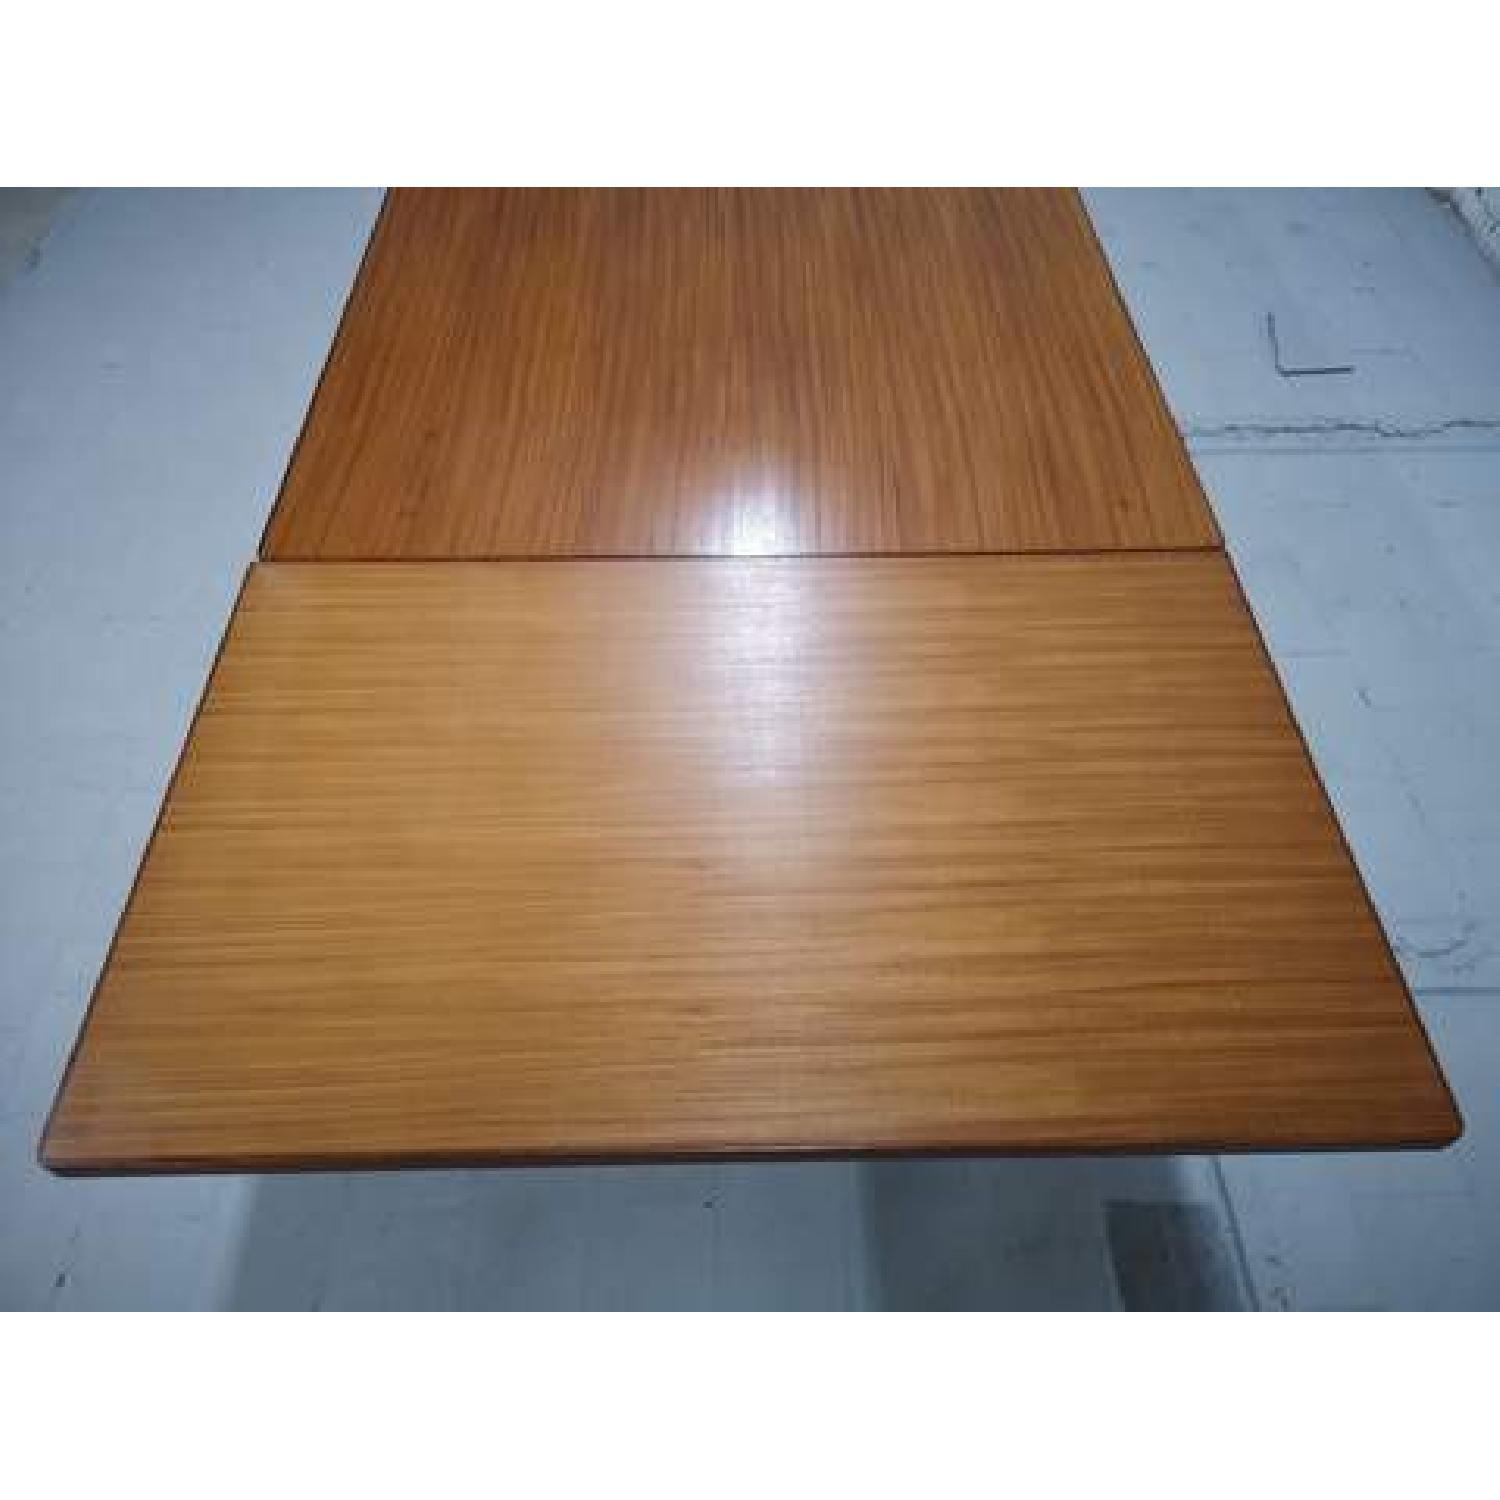 Mid-Century Modern Danish Extendable Draw Leaf Dining Table - image-7